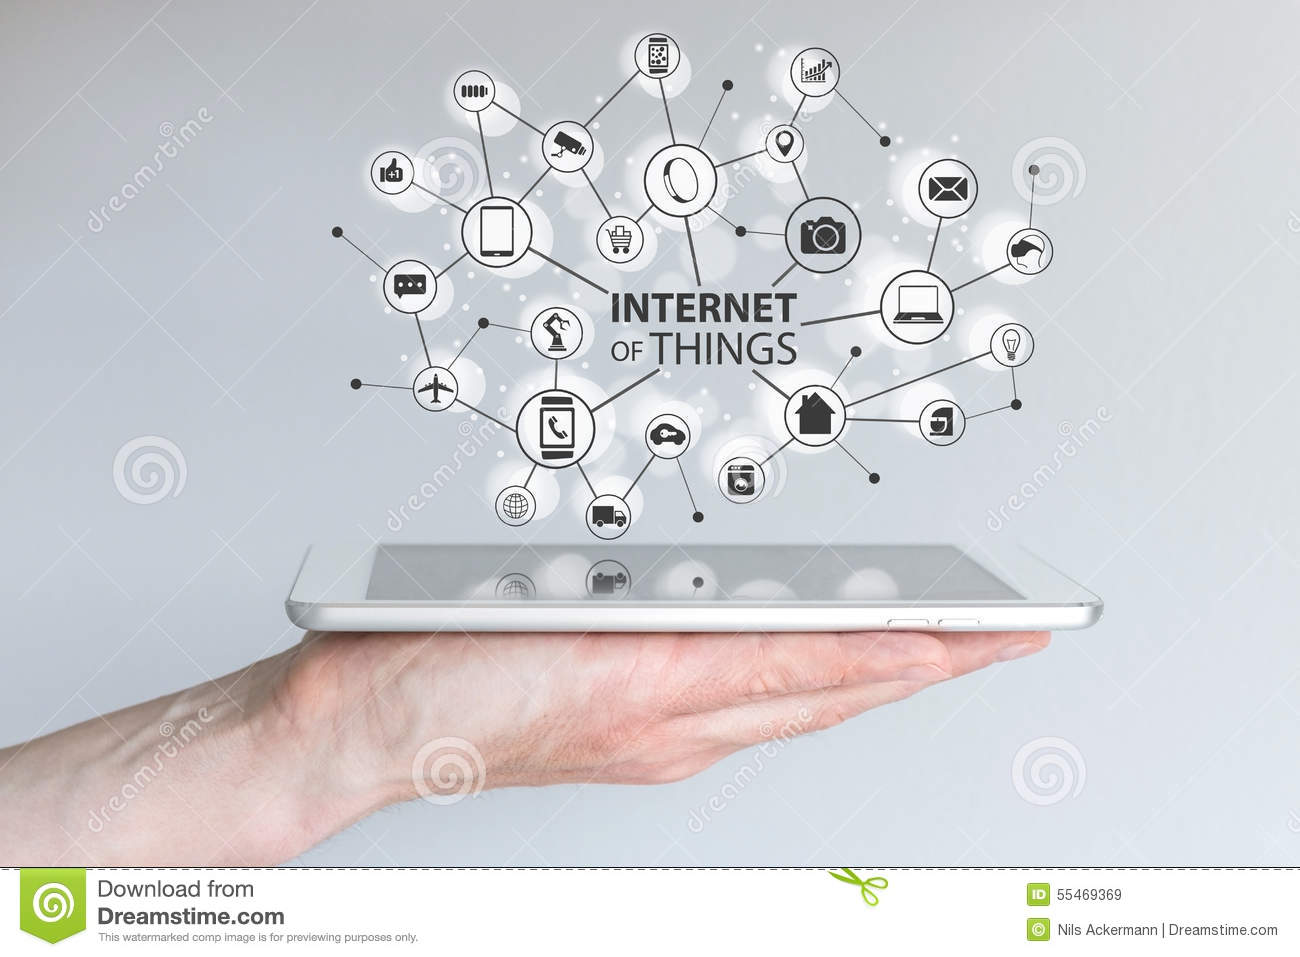 Internet Of Things (IOT) And Mobile Computing Concept